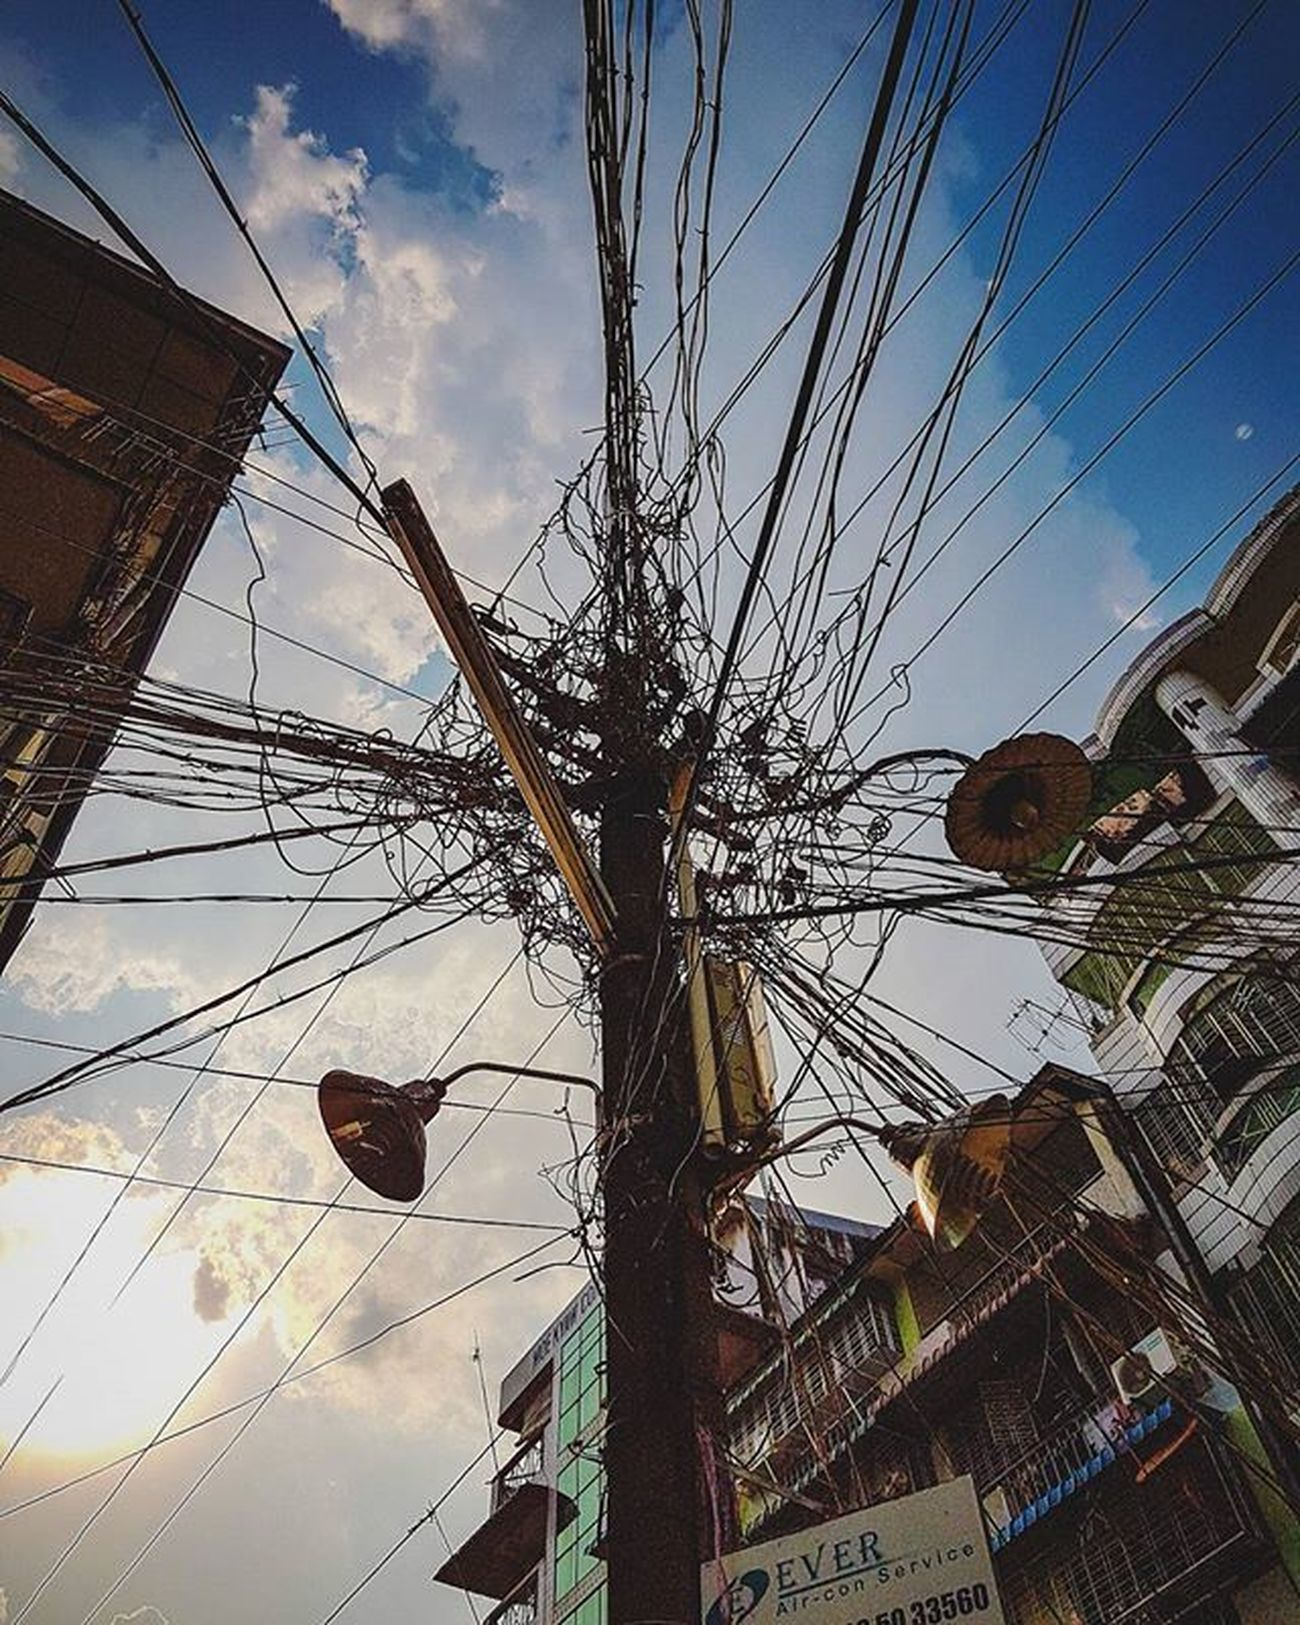 Welcome to Yangon Messy wires Messywires Igersmyanmar Myanmar Burma Burmesestyle Yangon Rangoon Sky Wires Beautifulyangon Beautifulmyanmar Instagood Choose2create Vacationinstyle Yourworldgallery Travelgood Instagram Instagrammers Instagallery AdobeLightroom Vacationinstyle Photooftheday Photography Instaclickoftheweek Instaclickoftheday asiaonetravelsnaps alphahype meistershots